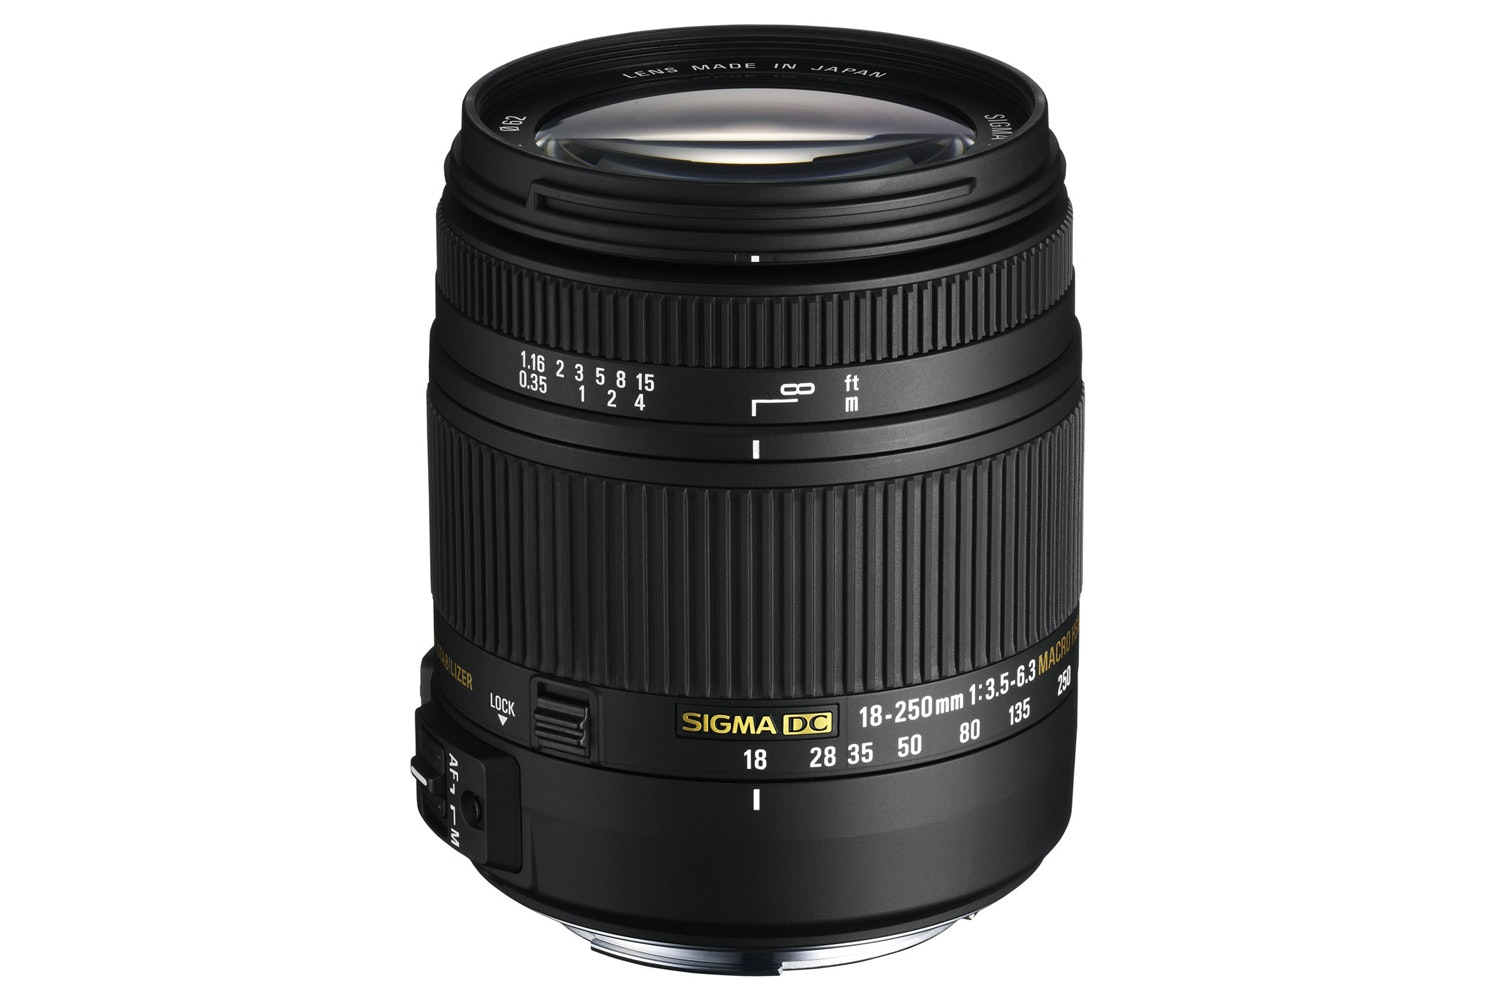 Sigma 18-250mm DC OS Macro HSM lens for Canon